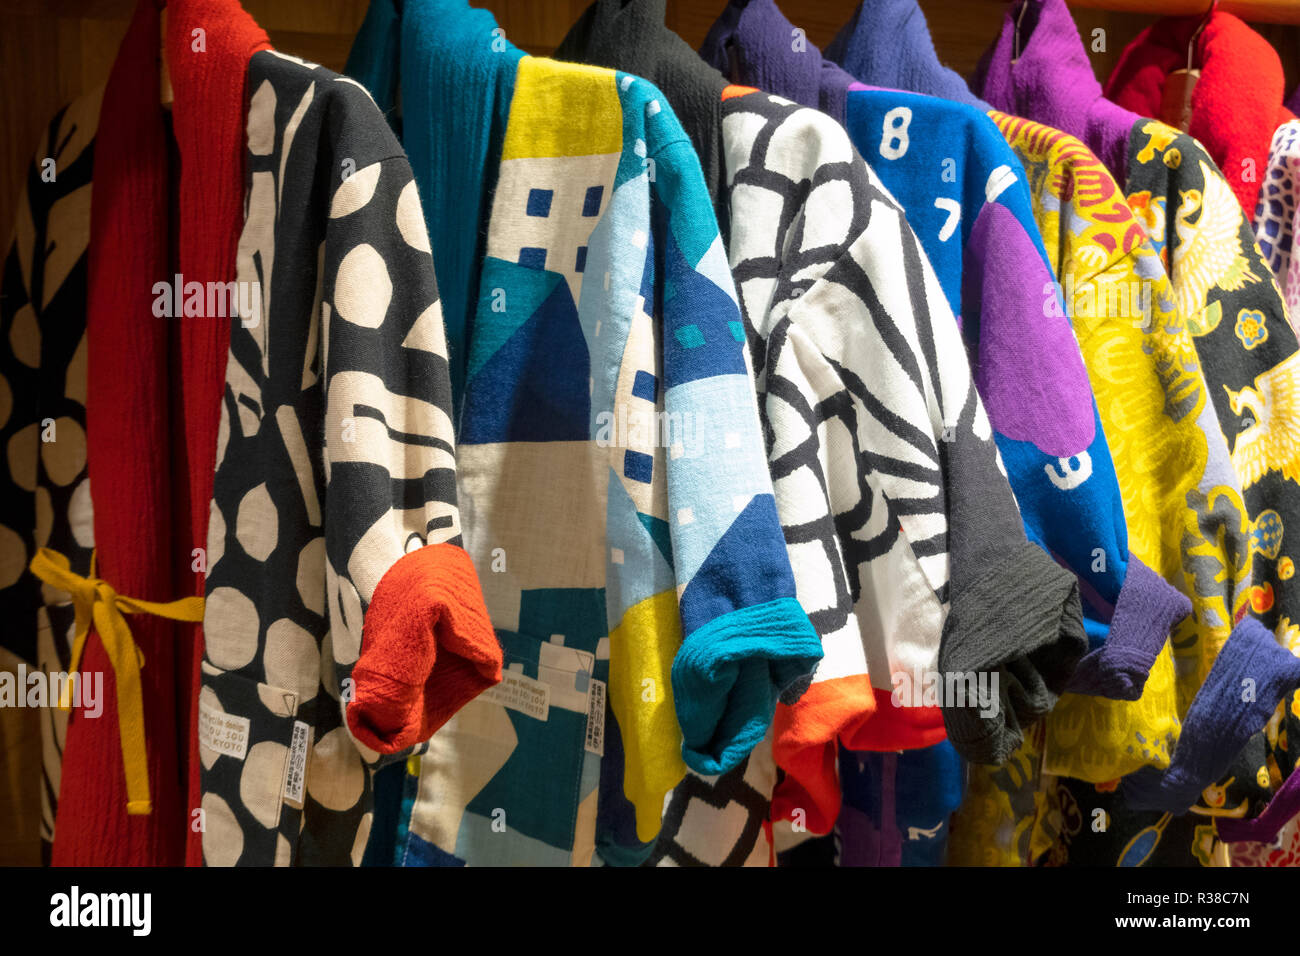 Modern Japanese fashion brand Sou Sou using colorful prints in Kyoto flagship store. Their design is inspired by traditional Japanese clothing. - Stock Image